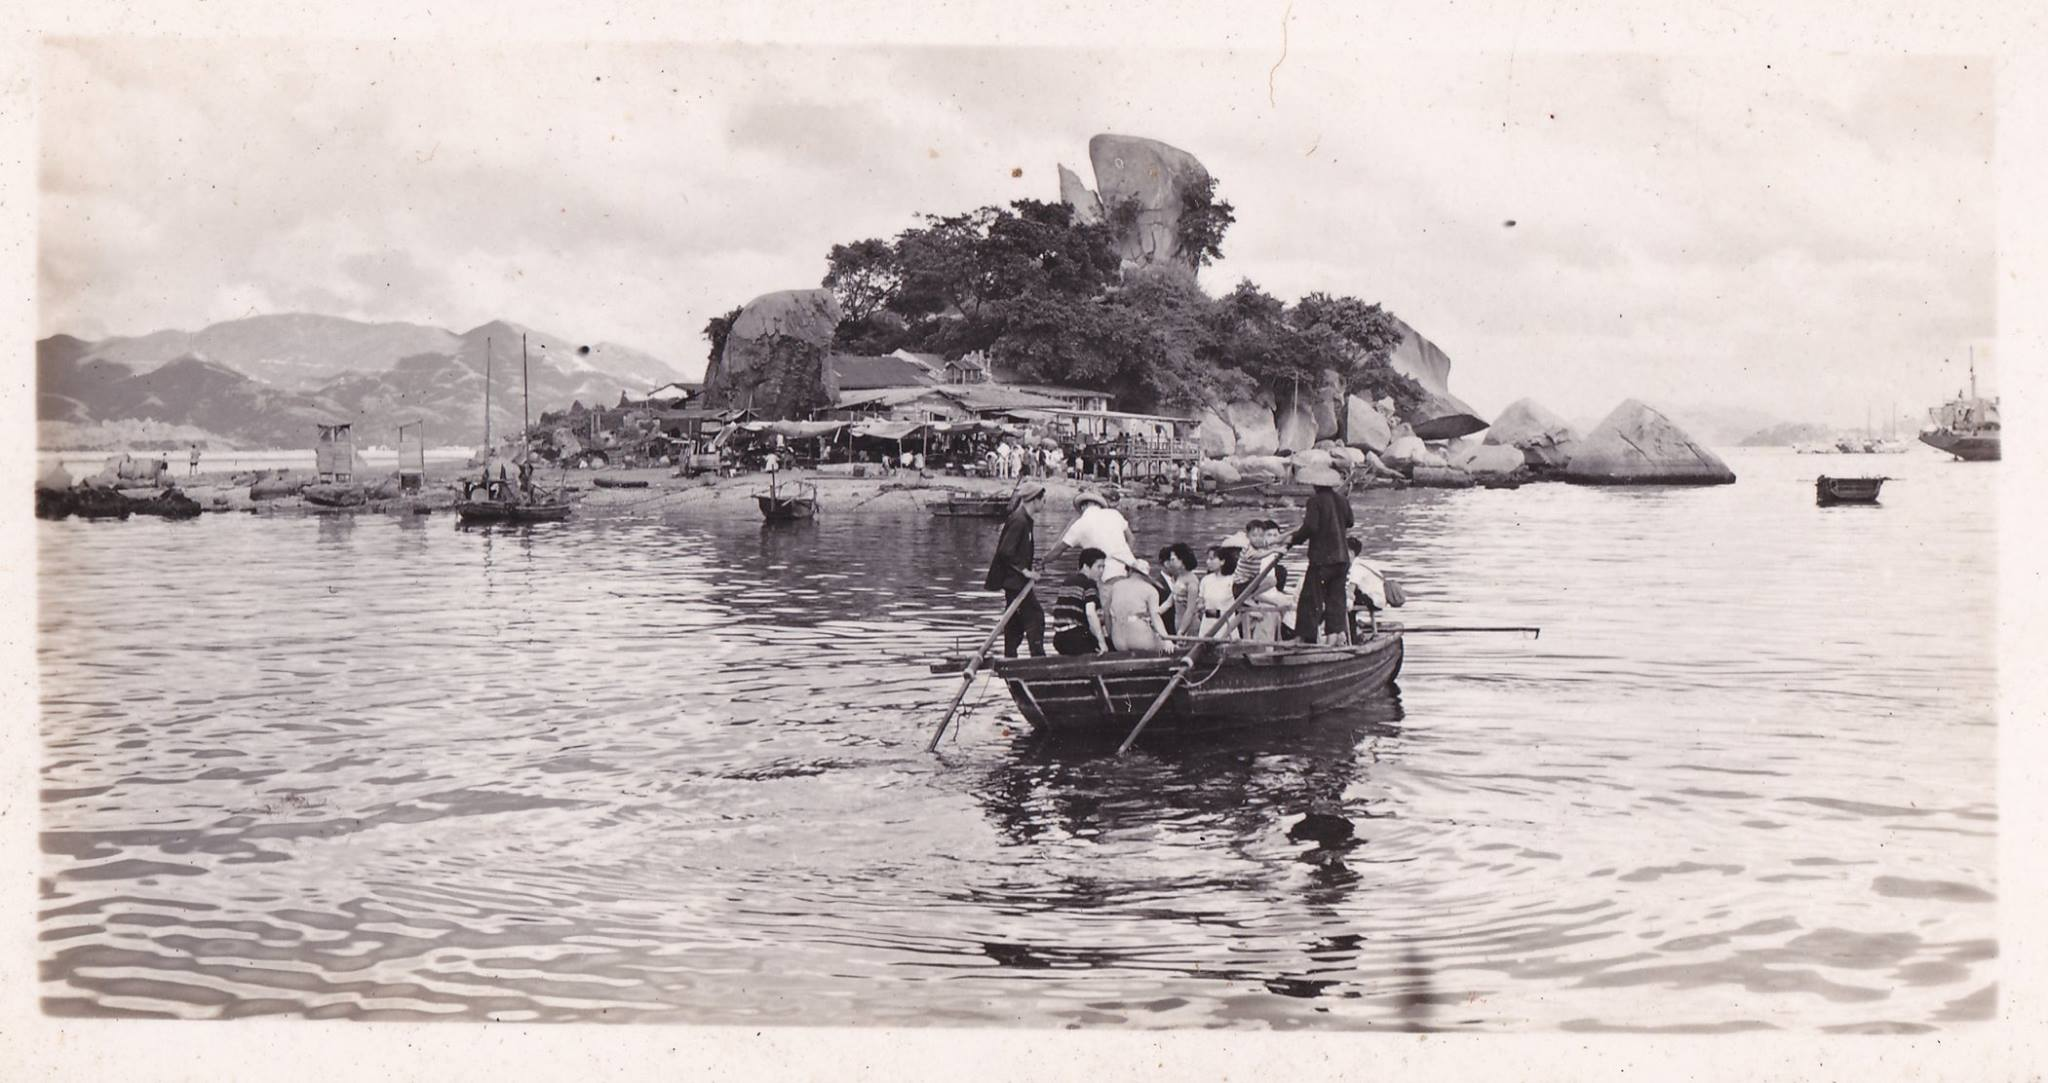 Hoi Sham Island, To Kwa Wan (circa 1950s). The island pictured is now part of a public park just around the corner. As is the case with most of the original shoreline of Victoria Harbour, the water separating the island has been reclaimed with landfill. (Source: SCMP)